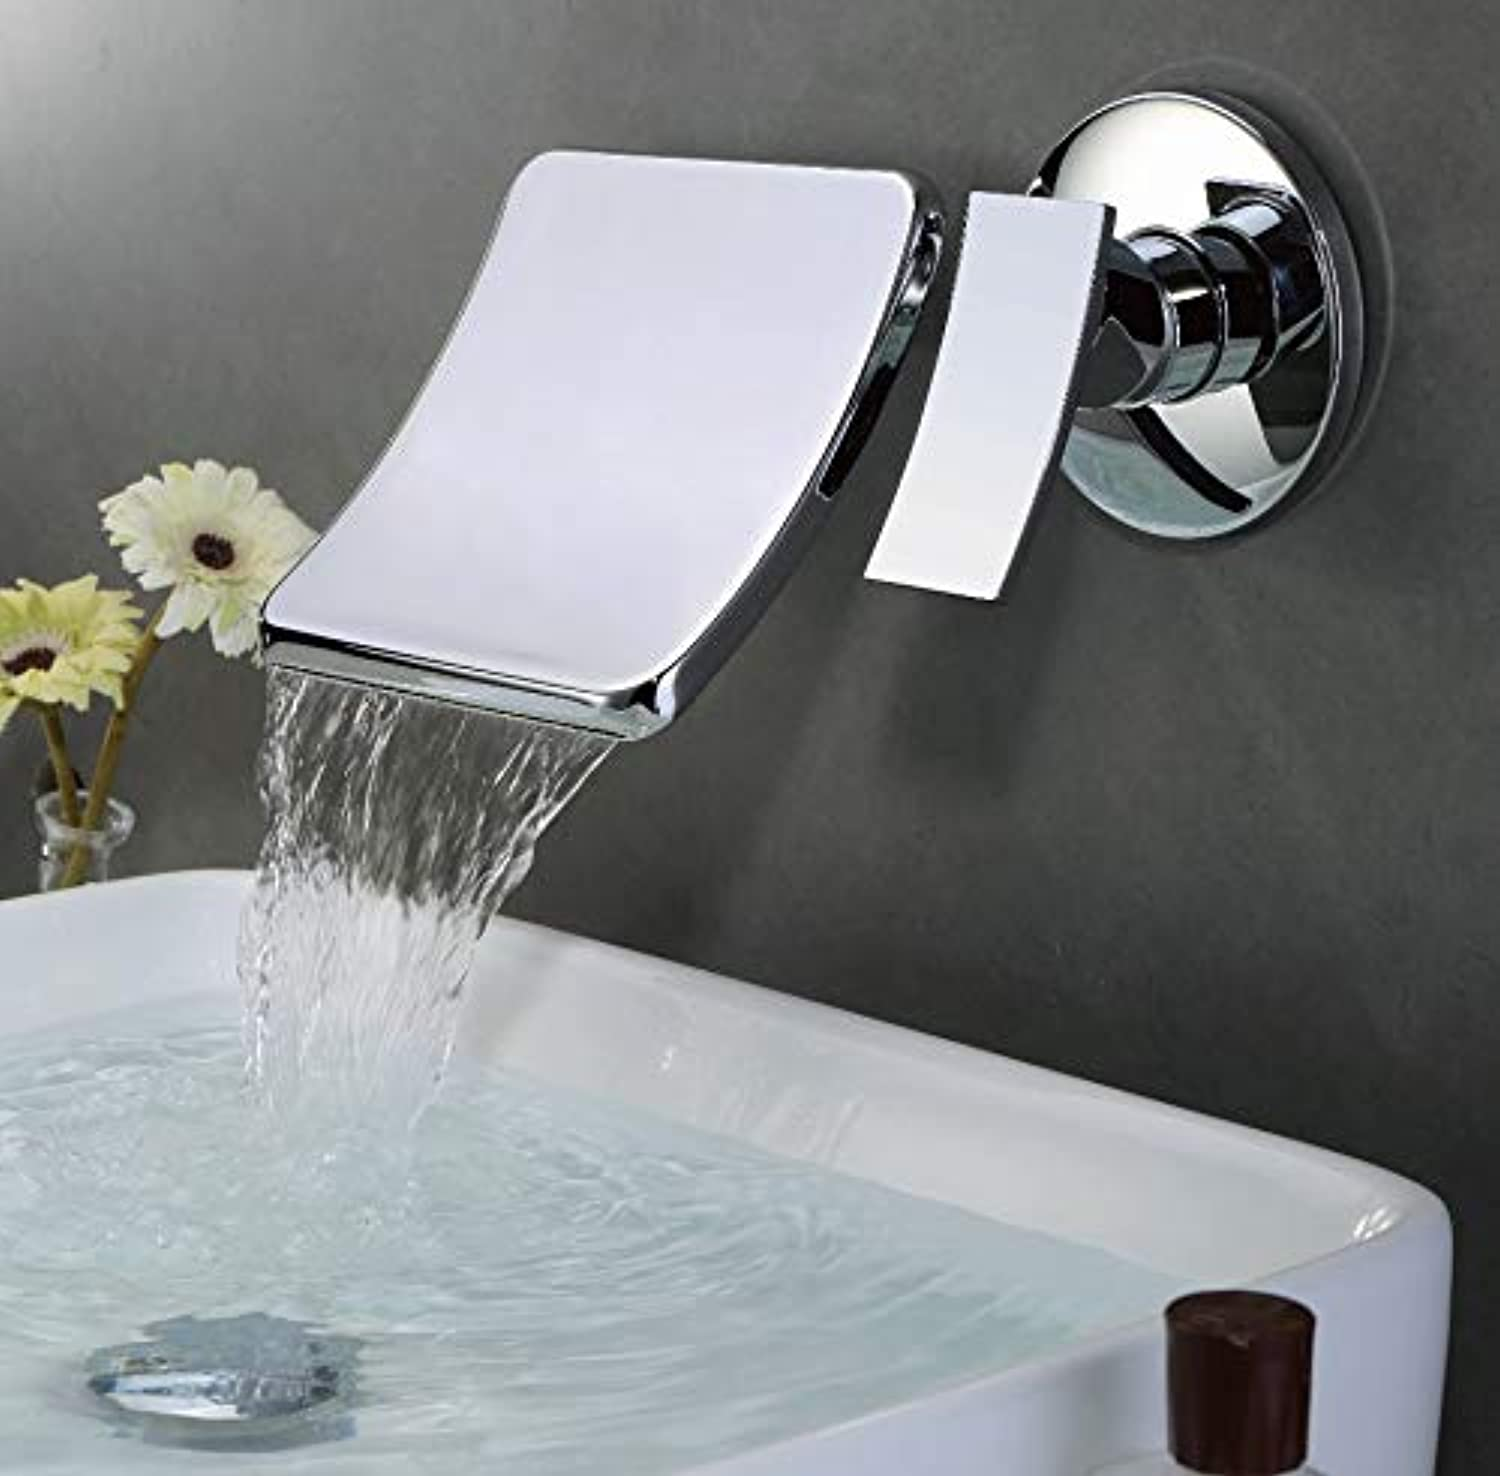 Wall-Mounted Bathtub Faucet Waterfall Single Treatment 2 Hole Basin with Large Spout Hot and Cold Water Mixing Faucet